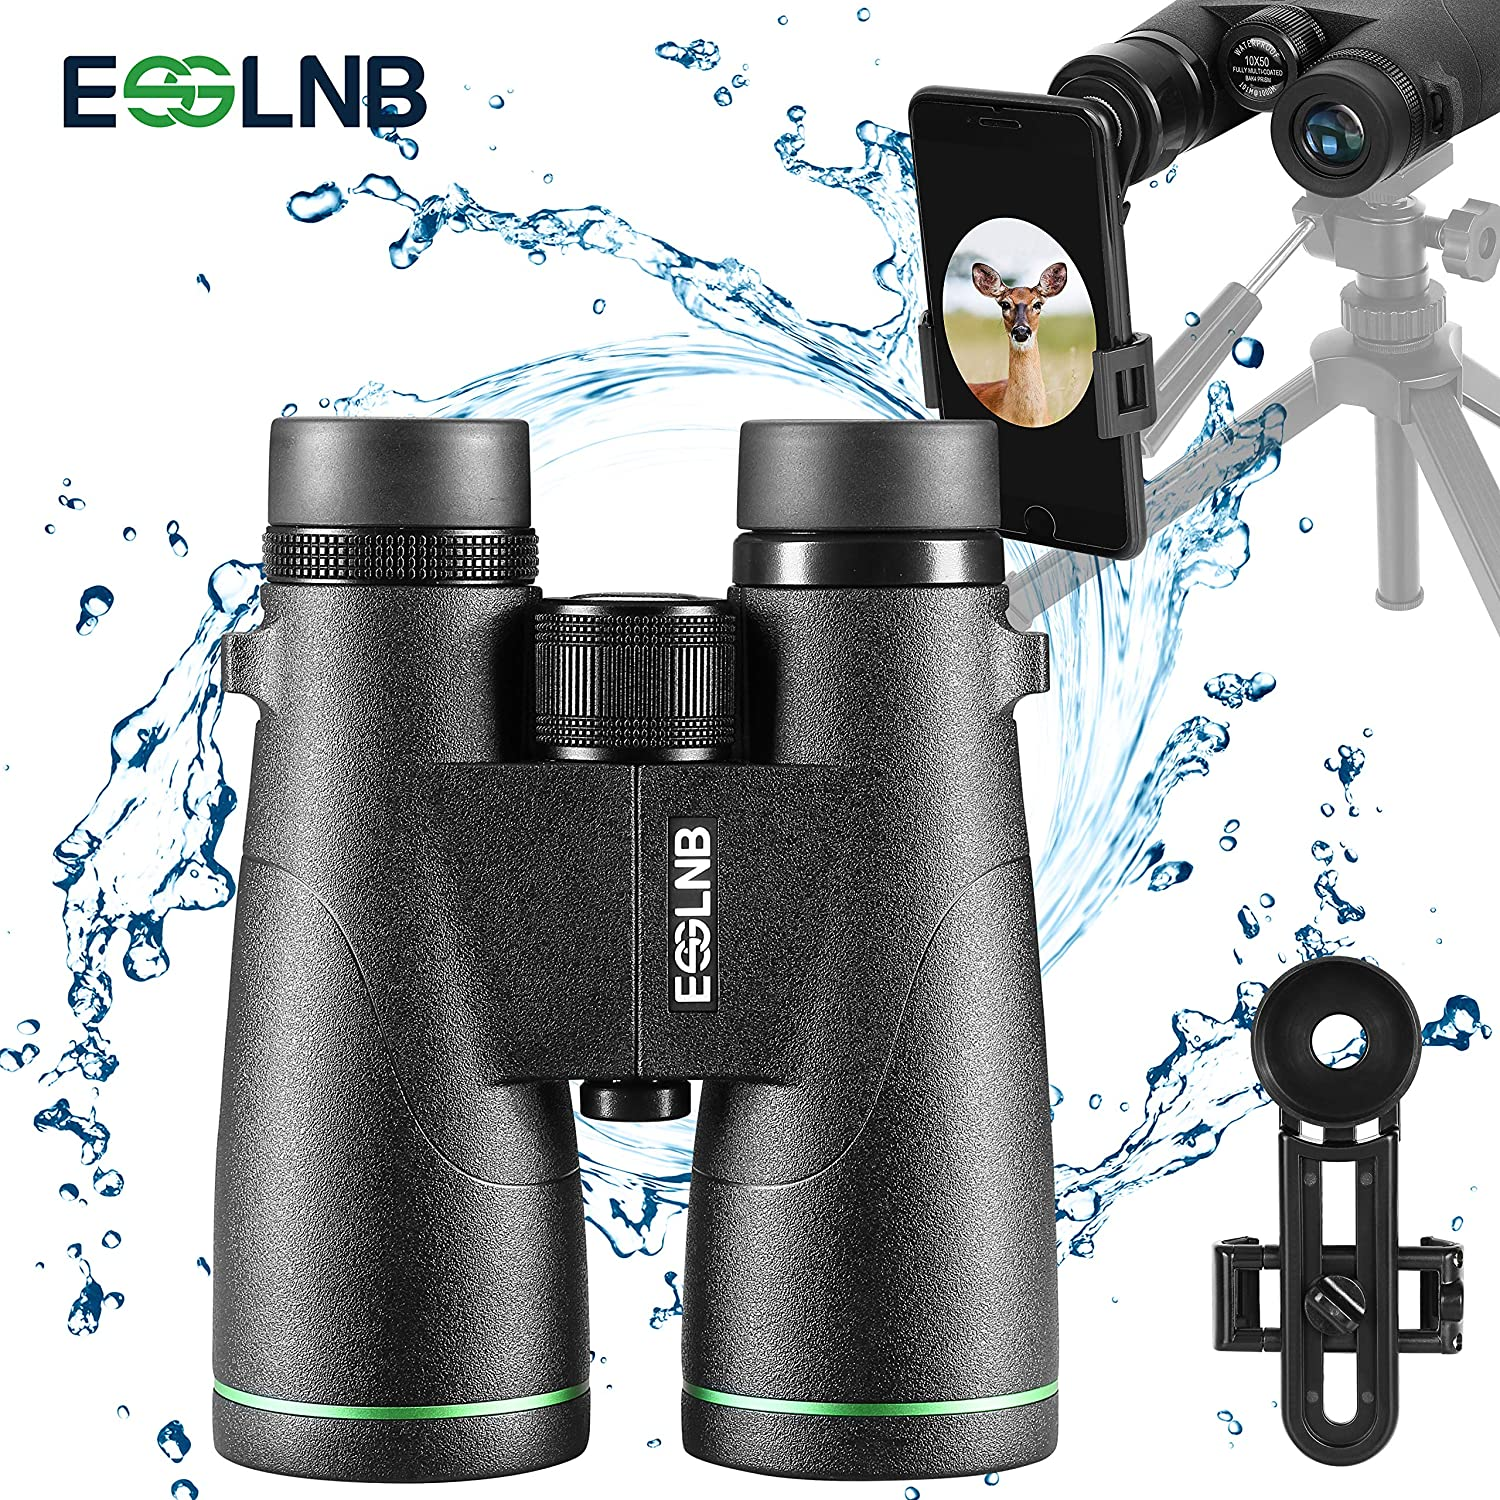 ESSLNB Waterproof Binoculars for Adults IPX7 10×50 Astronomy Binoculars with Phone Adapter BAK4 Fully Multi-Coated Compact Binoculars for Bird Watching Hunting with Carrying Bags and Strap